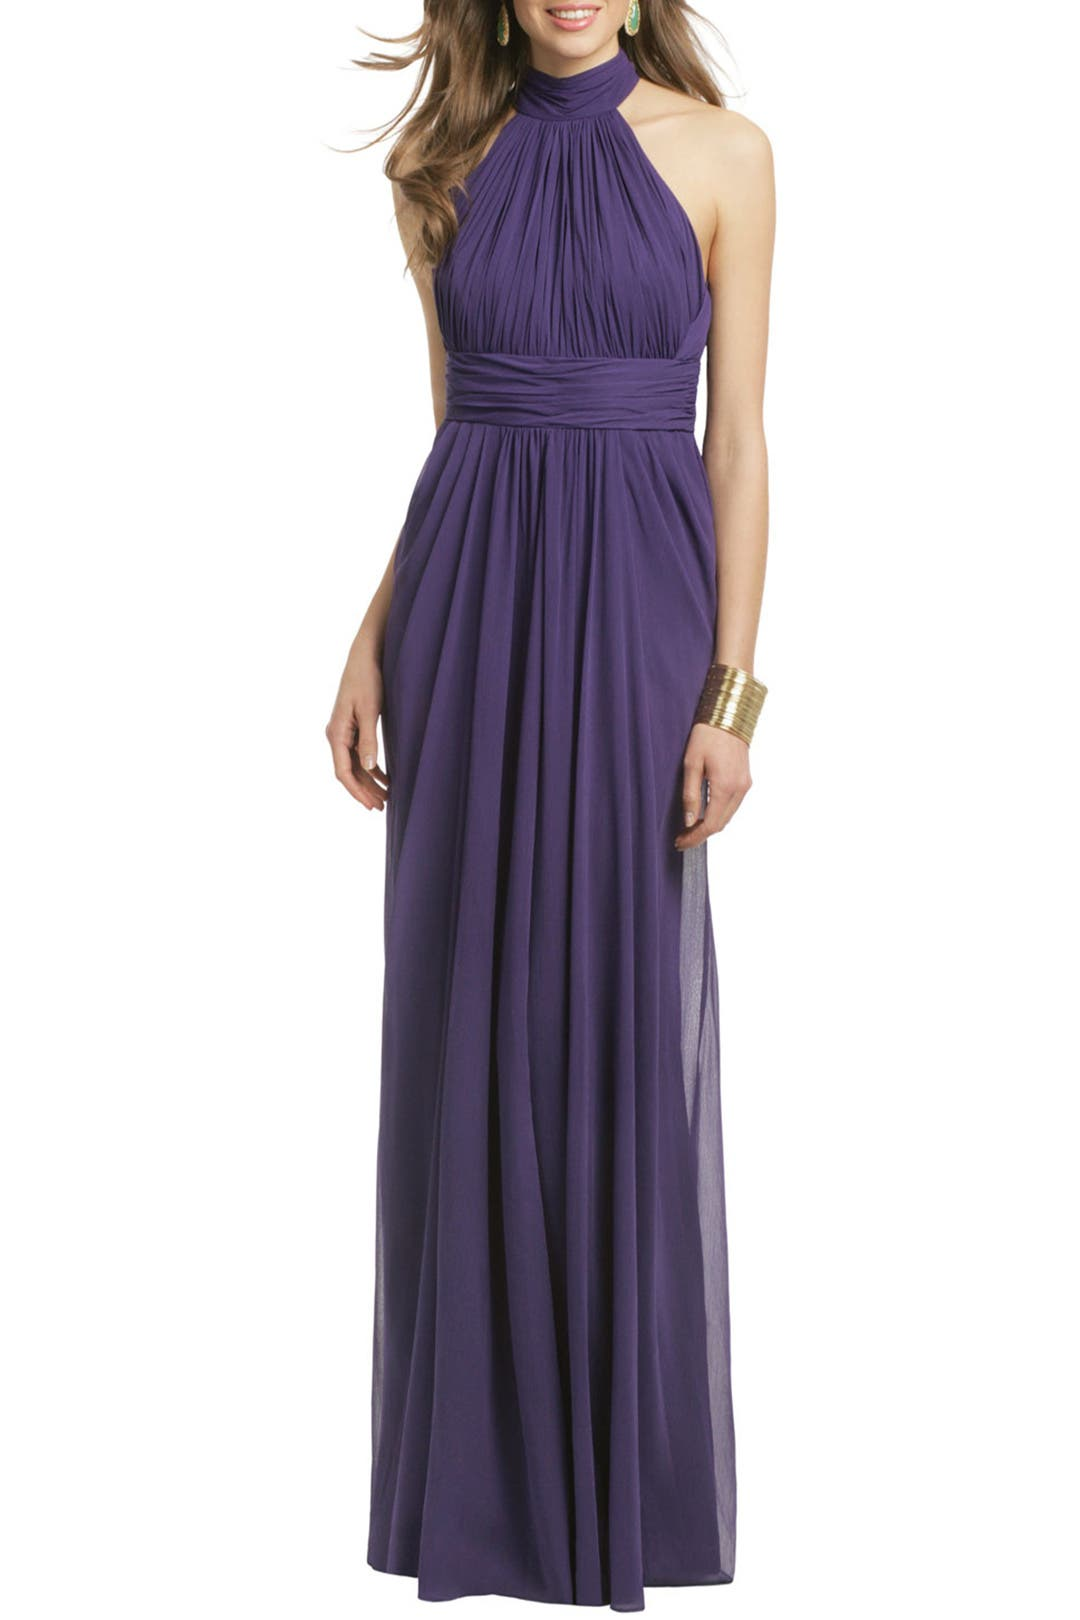 Make Love Not War Gown by Badgley Mischka